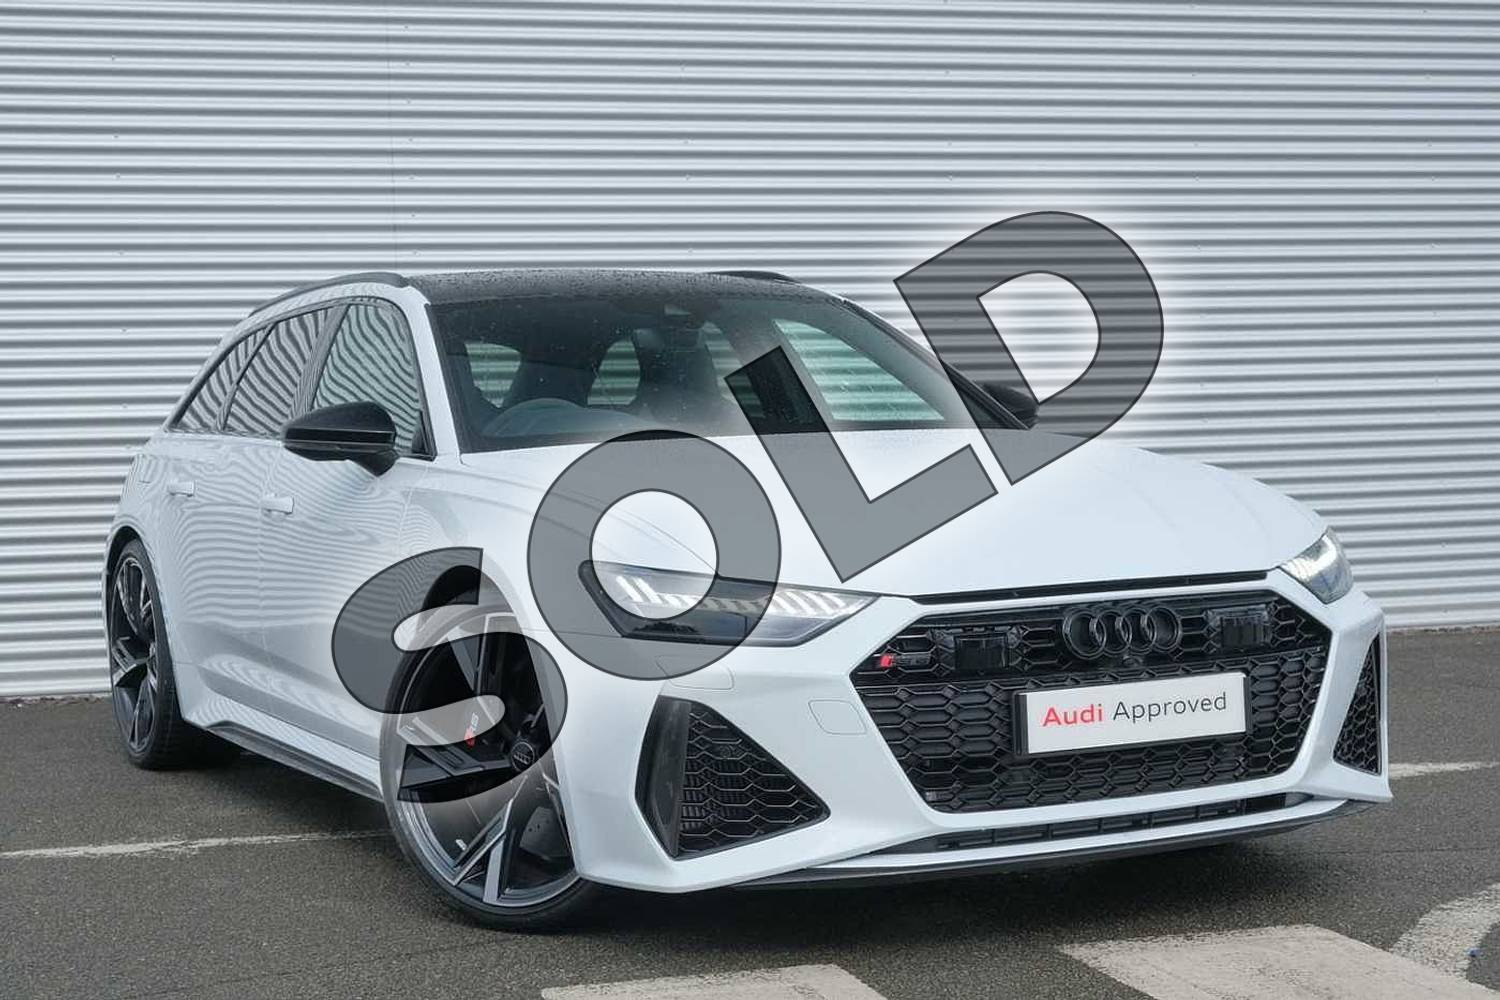 Audi Rs6 Rs 6 Tfsi Quattro Carbon Black 5dr Tiptronic For Sale At Coventry Audi Ref 021 U167737